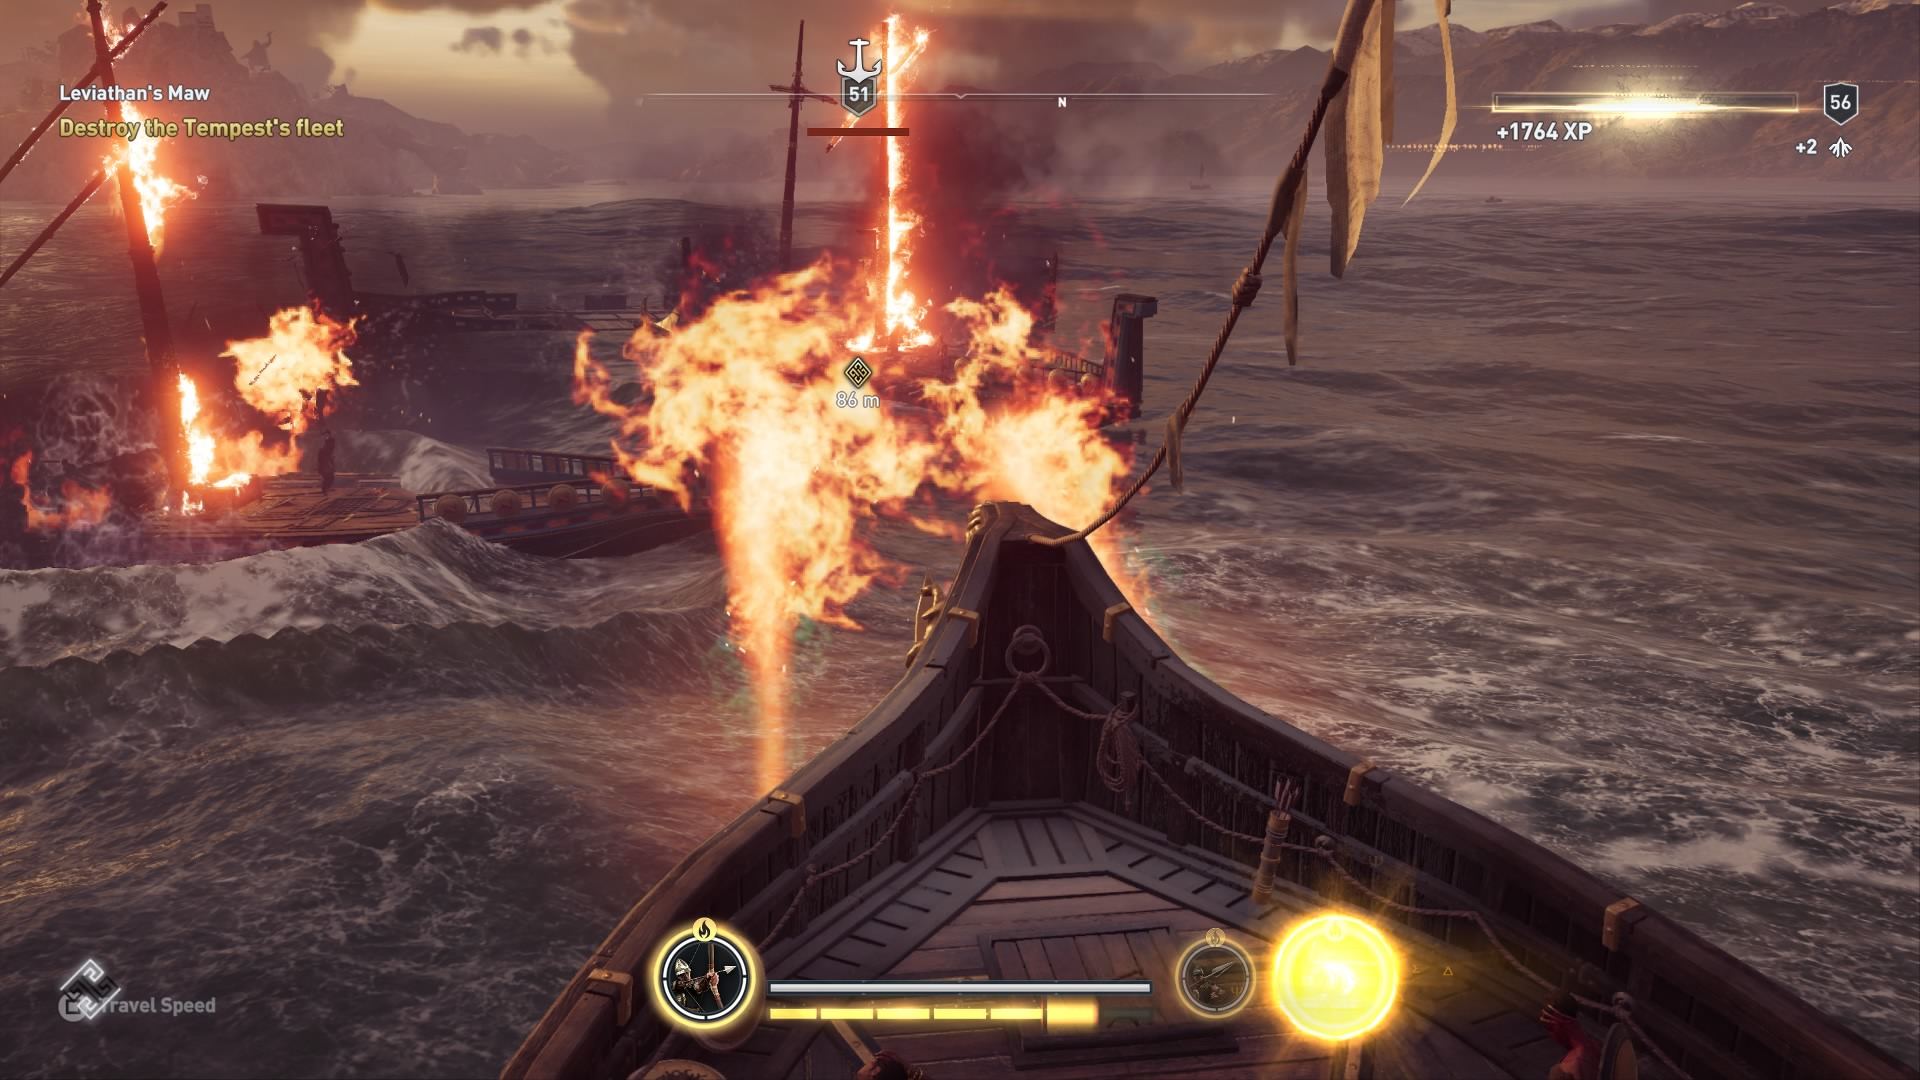 Assassin's Creed Odyssey flamethrower